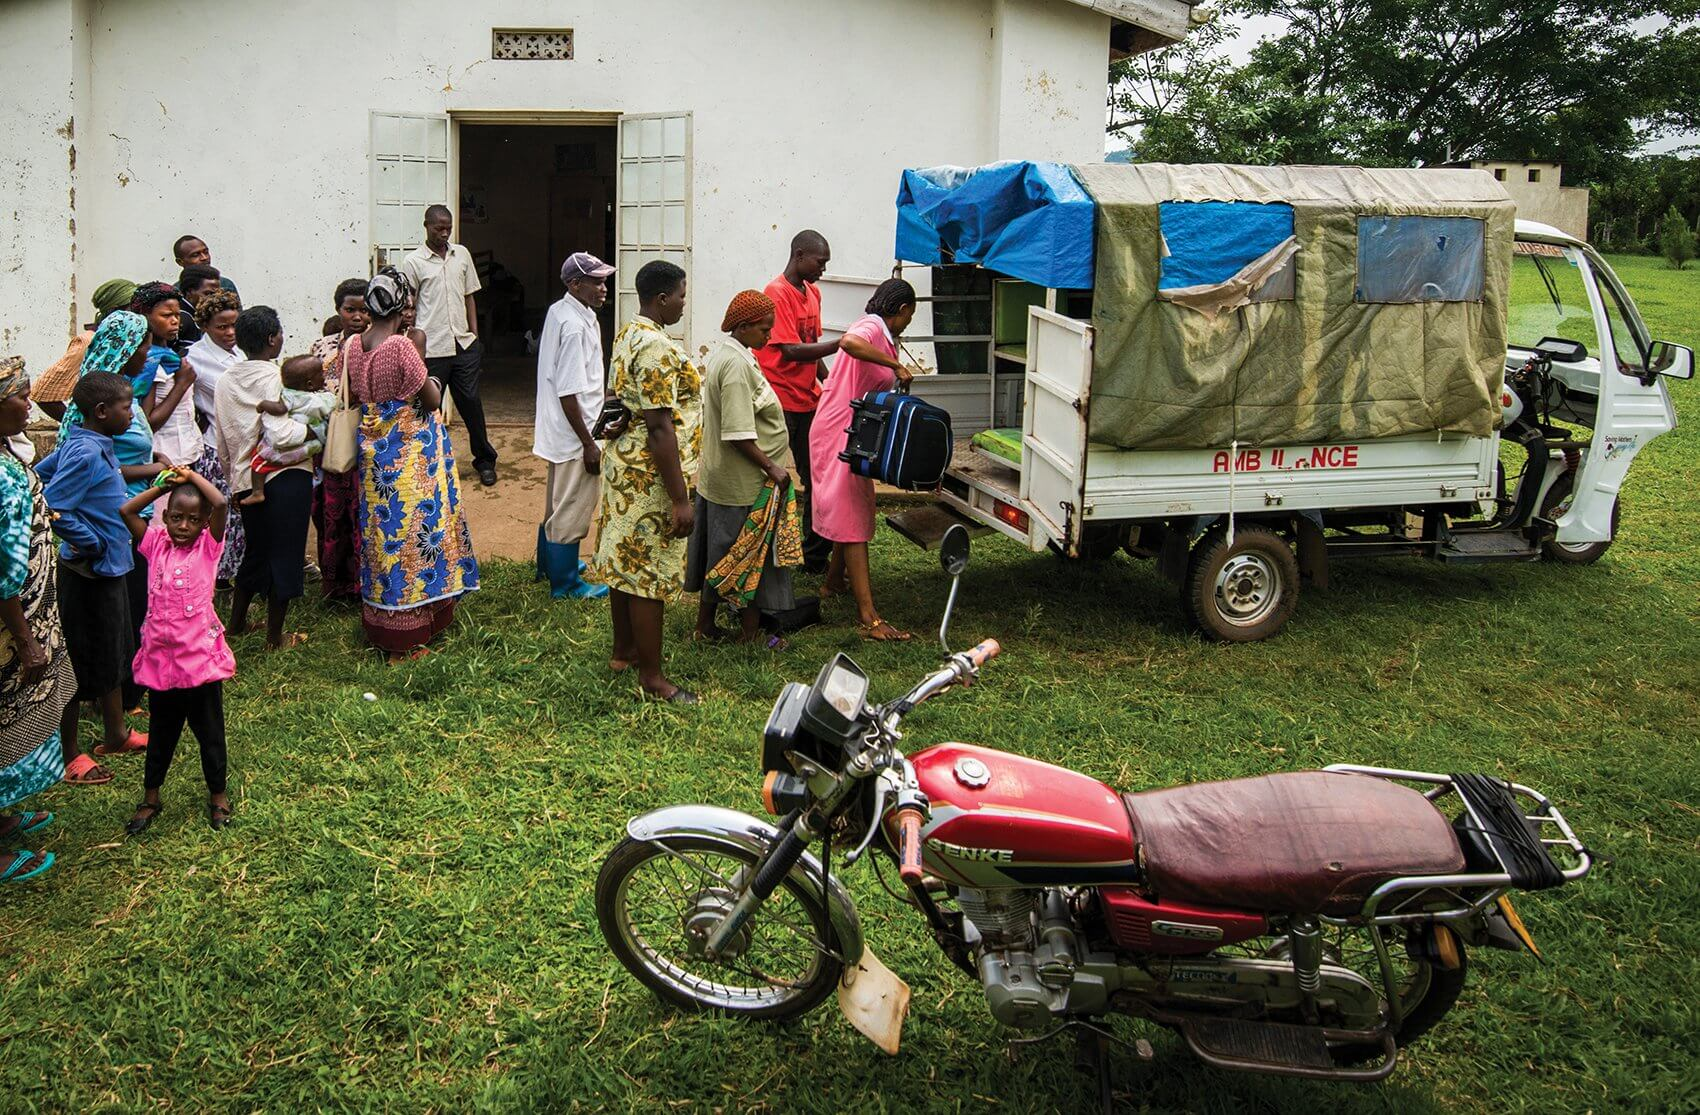 An ambulance is prepared to transport complicated cases from a Ugandan village. (Credit: Smiley Pool)